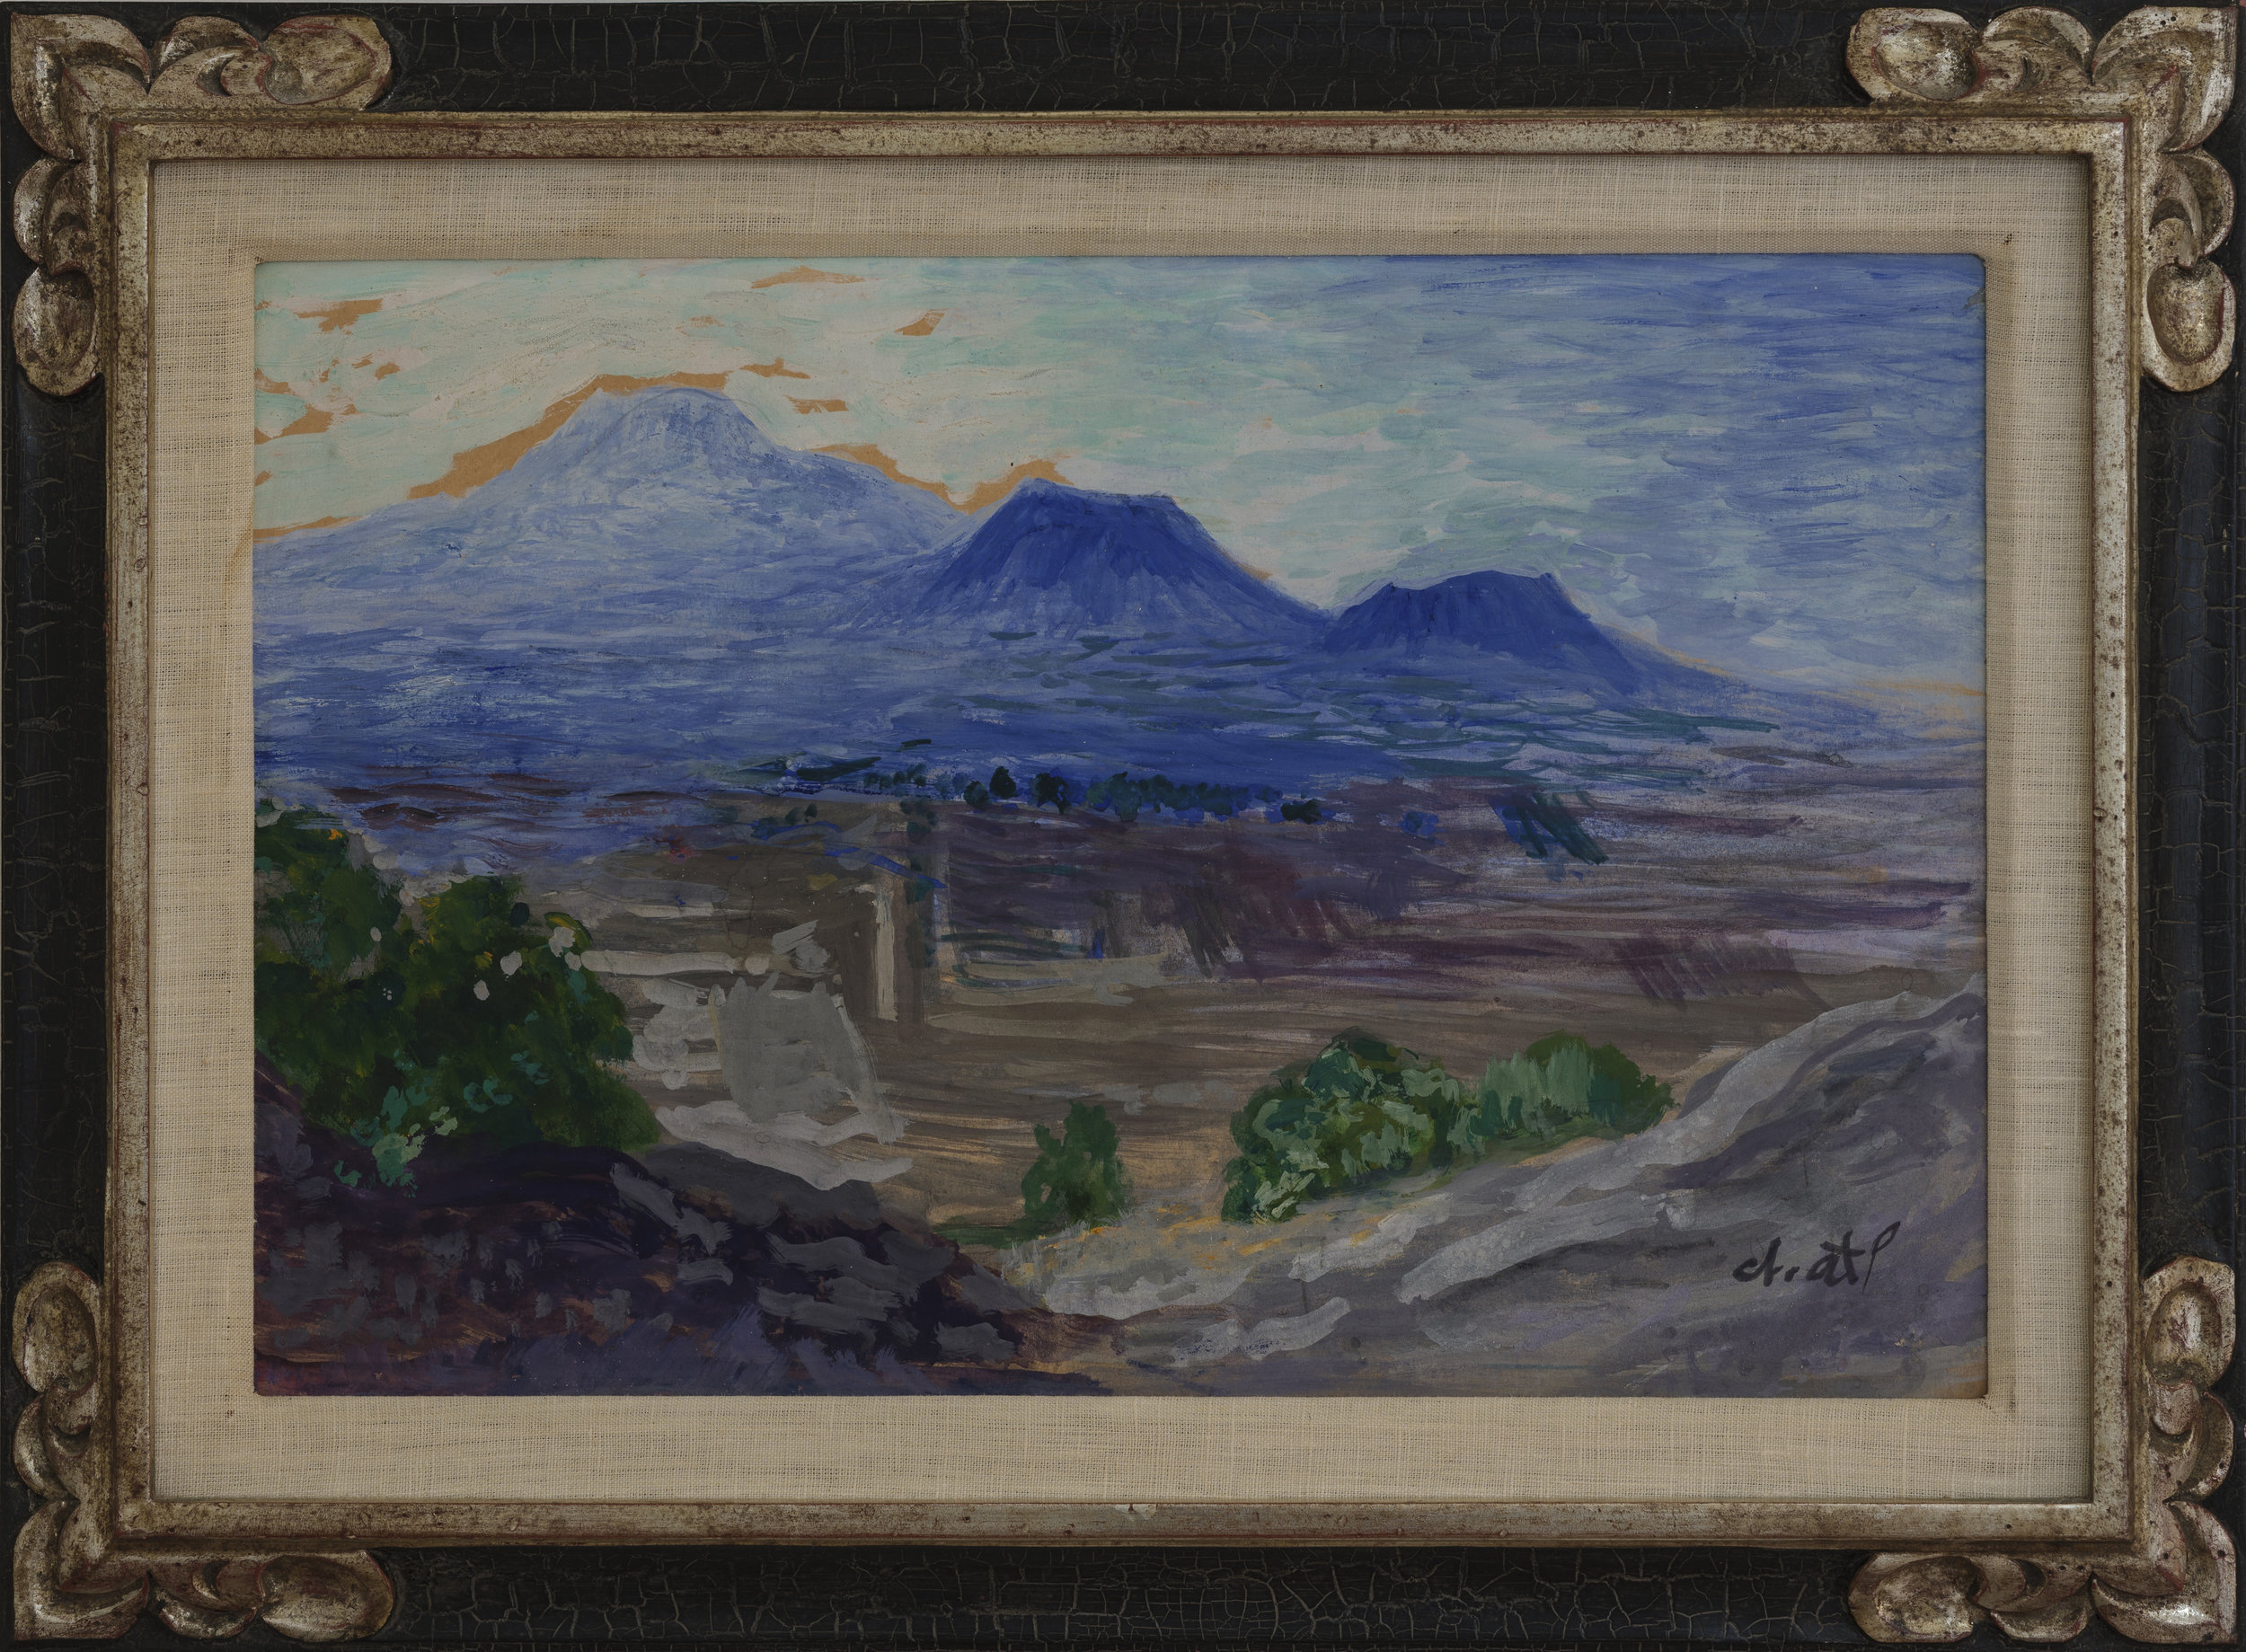 """Artist: Dr. Atl (Gerardo Murillo Cornado) Title:  Landscape with Mountains (Valley of Mexco)  Medium: Atl colors on paper mounted on board Date: circa 1928 Size: 11.5"""" x 17.5"""" (29cm x 45cm) Condition: Excellent Signed"""